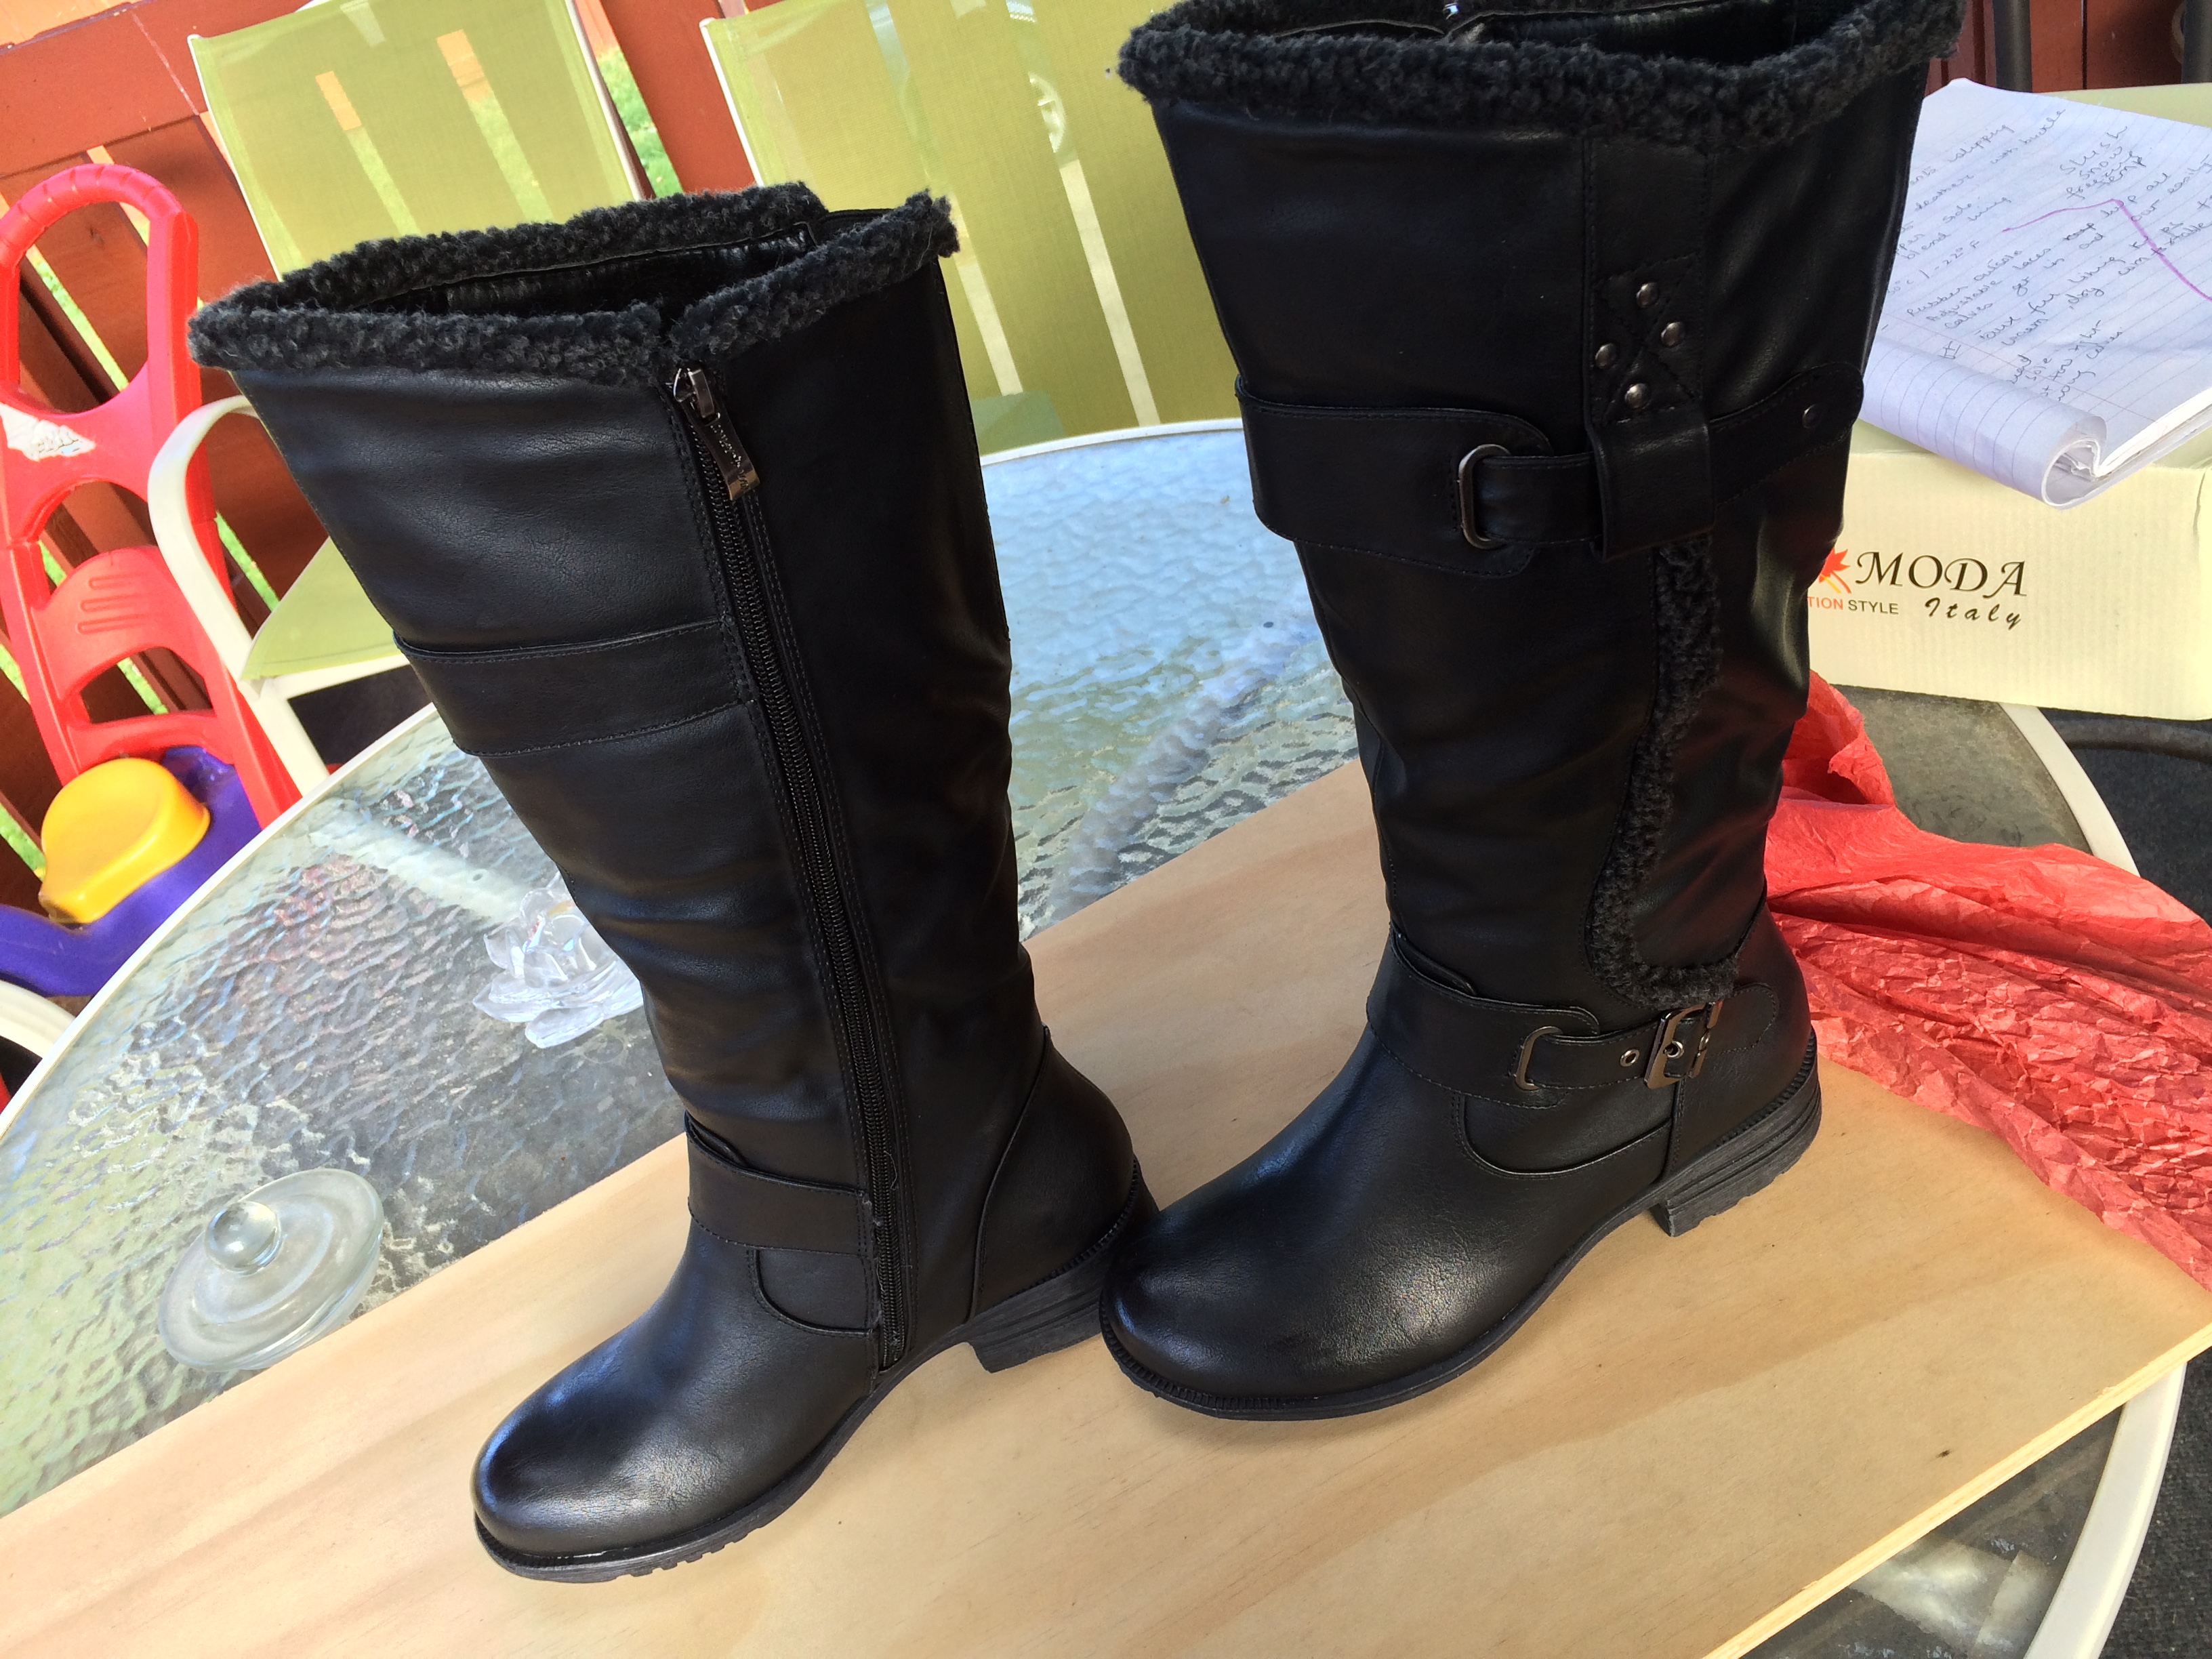 Boots for Comfort, Function and Style – Comfy Moda Boots ...